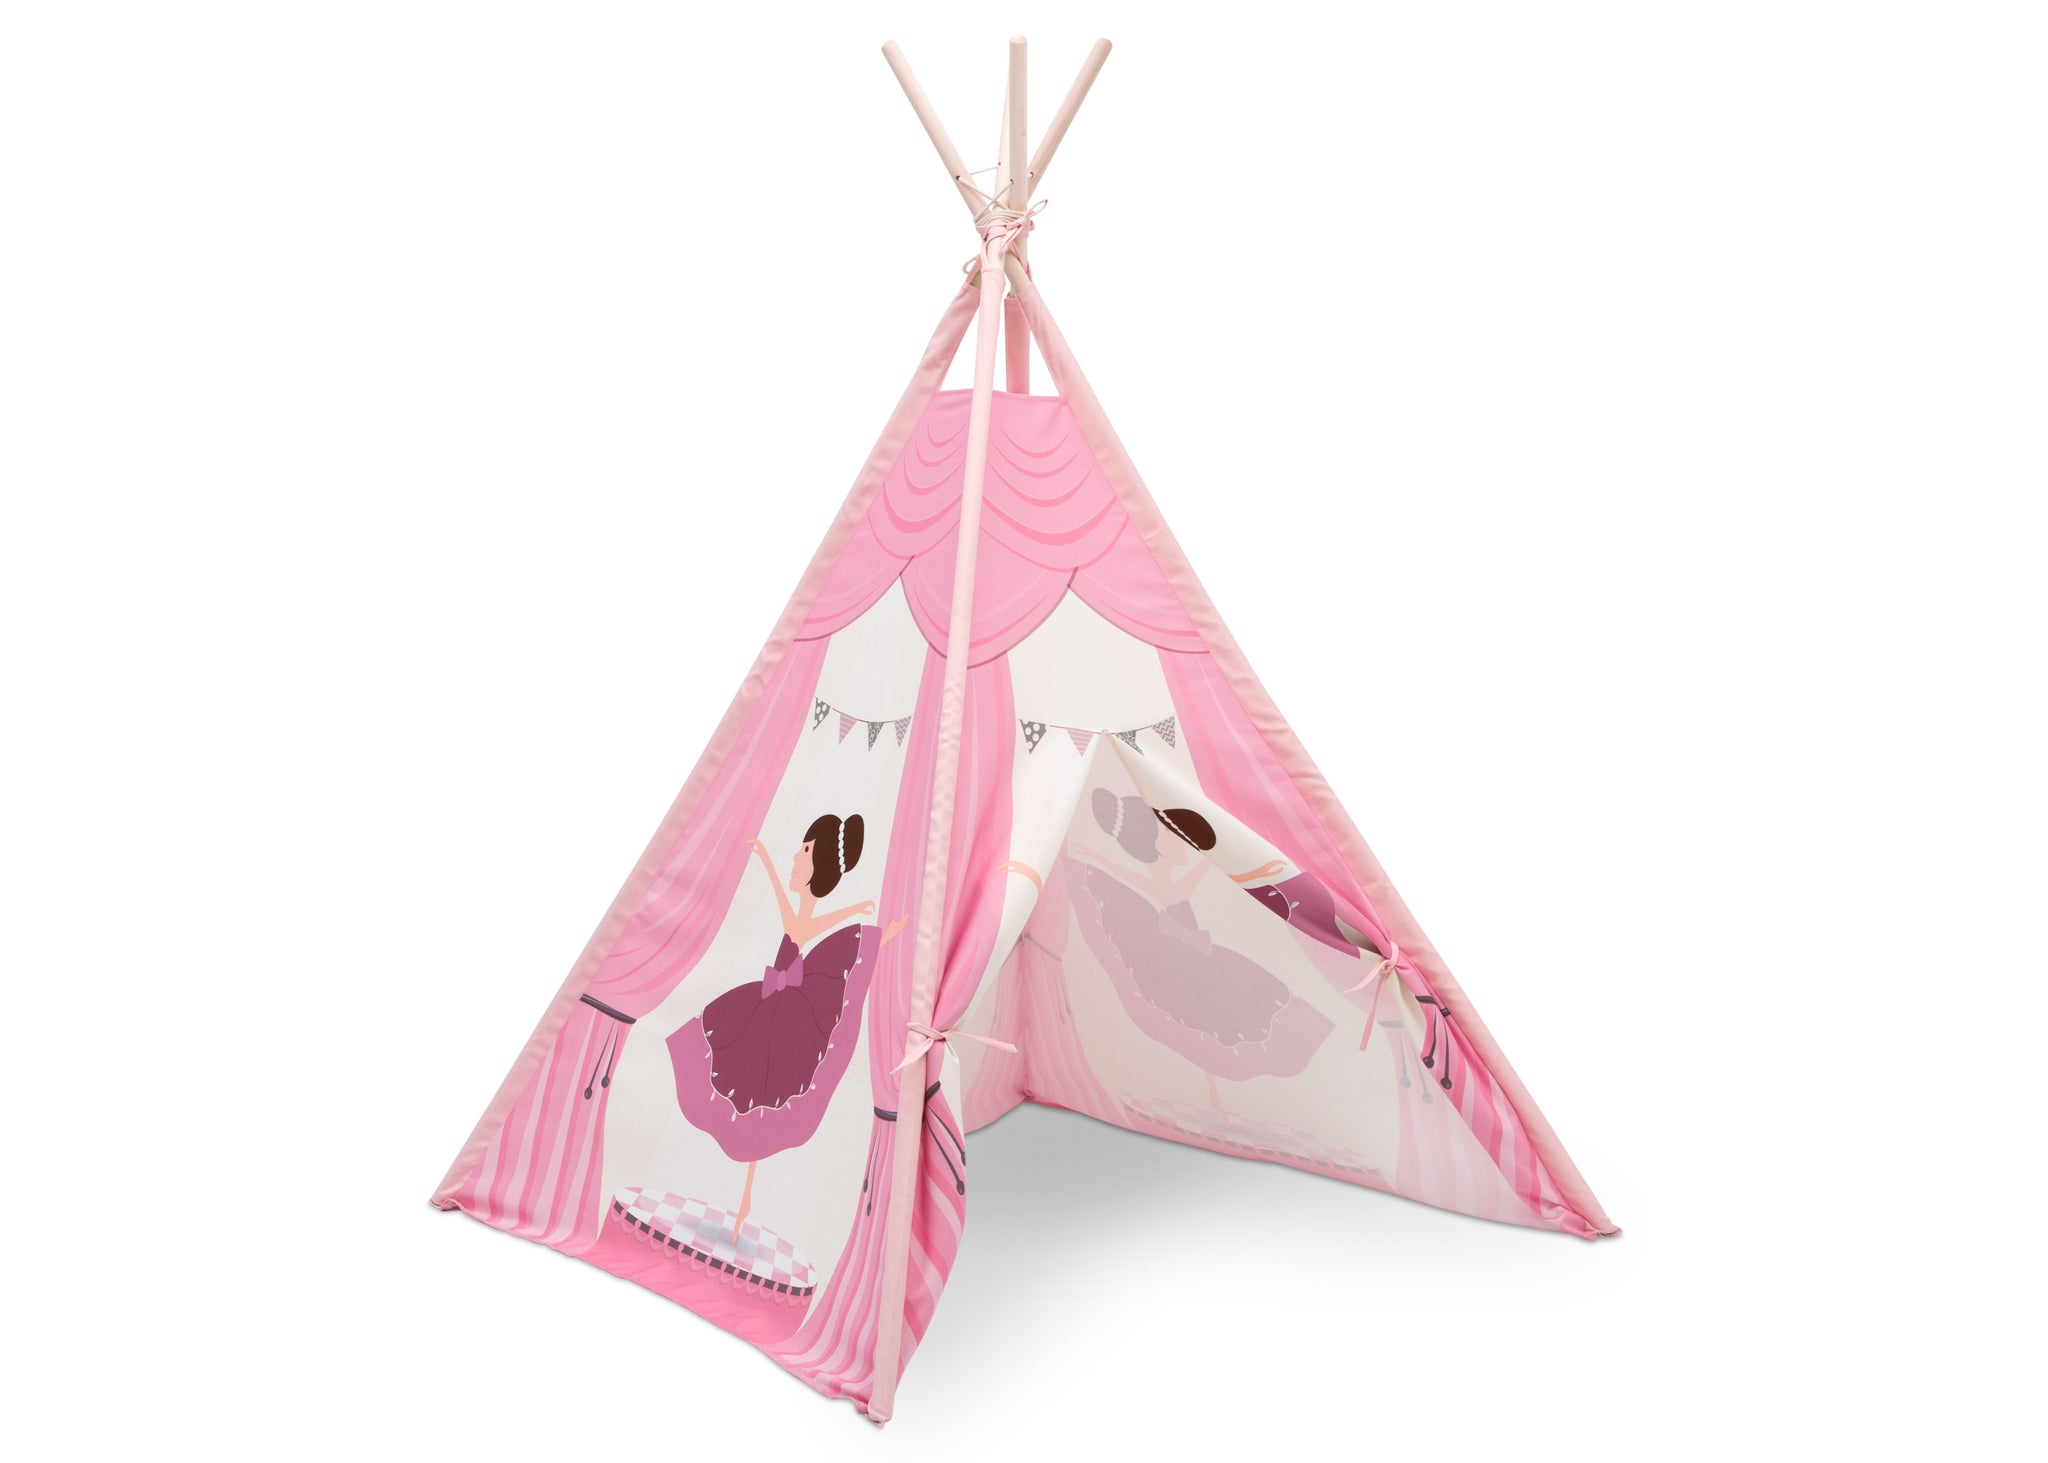 Delta Children Ballerina (999) Teepee Play Tent for Kids, Right Silo View